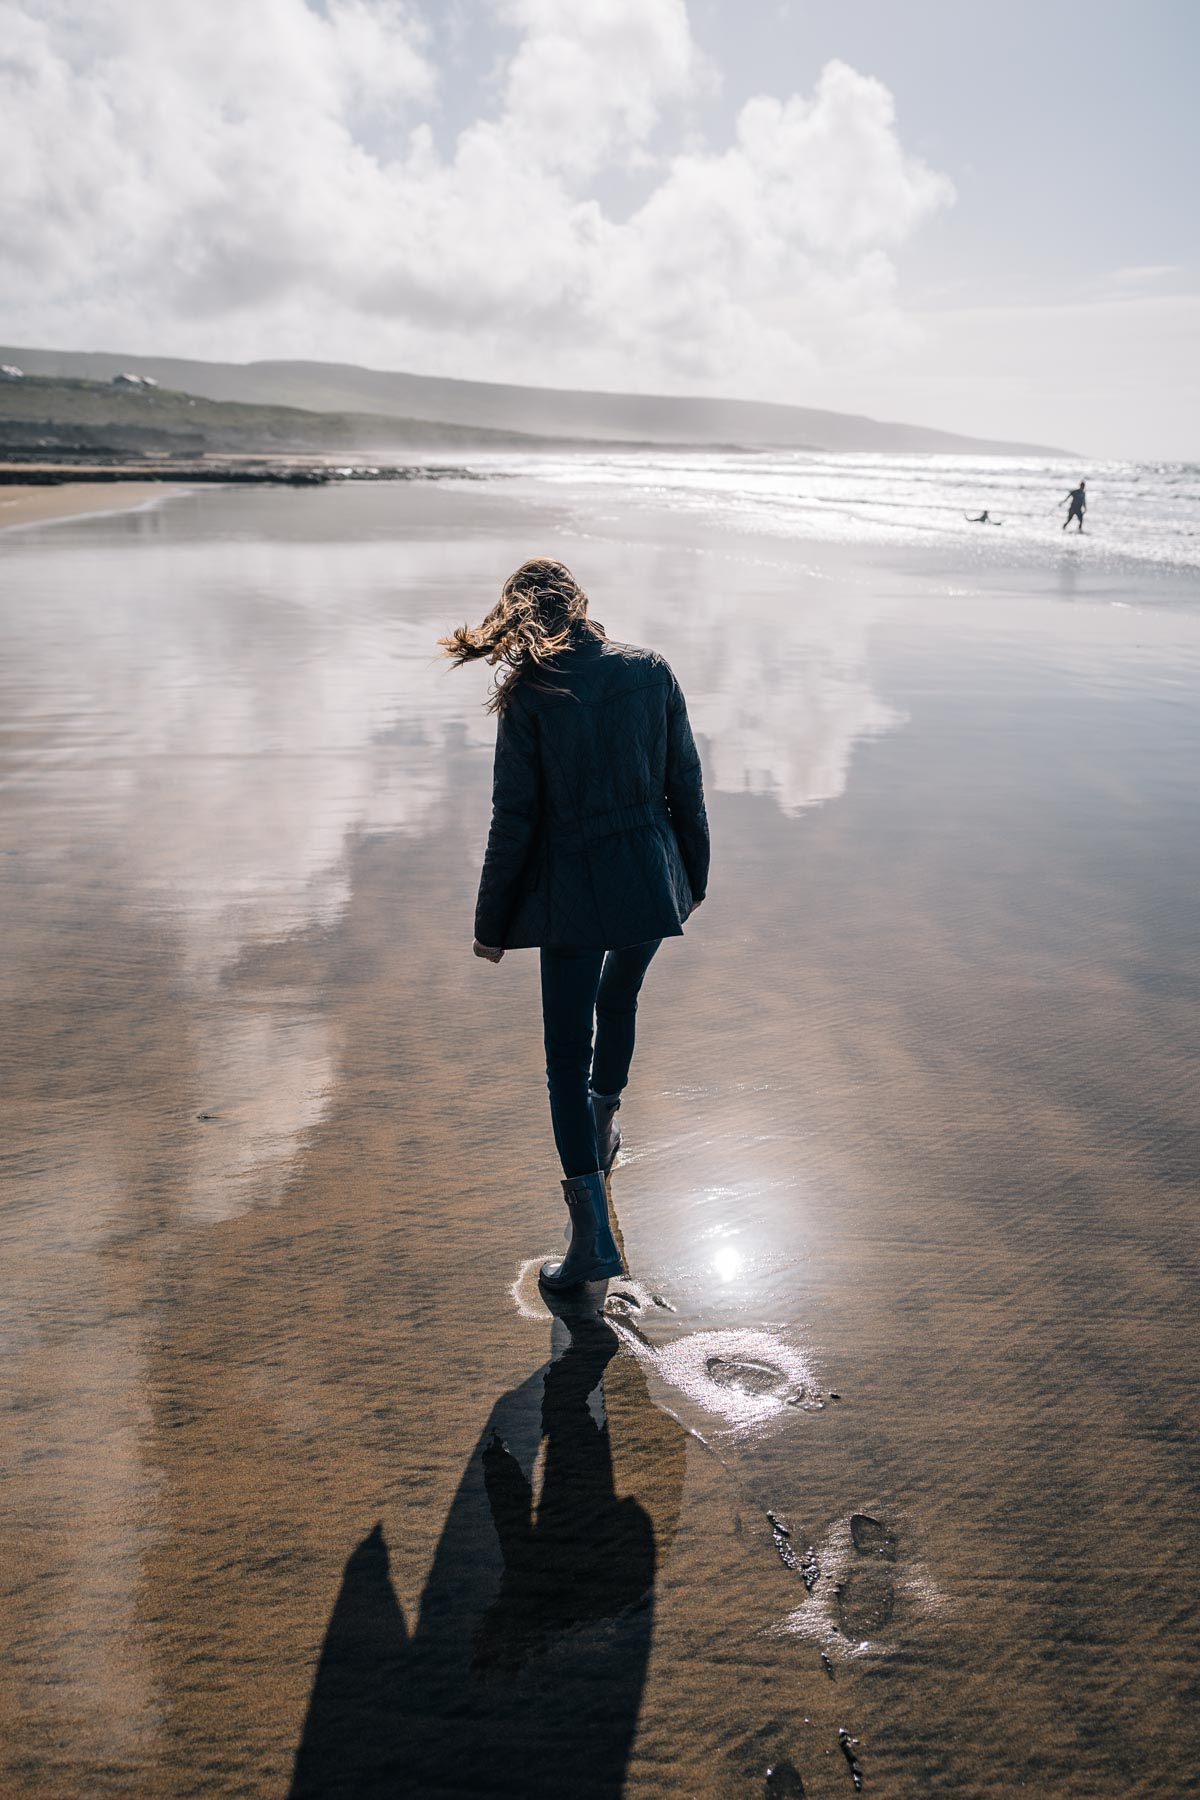 Jess Ann Kirby at Fanore Beach in Ireland